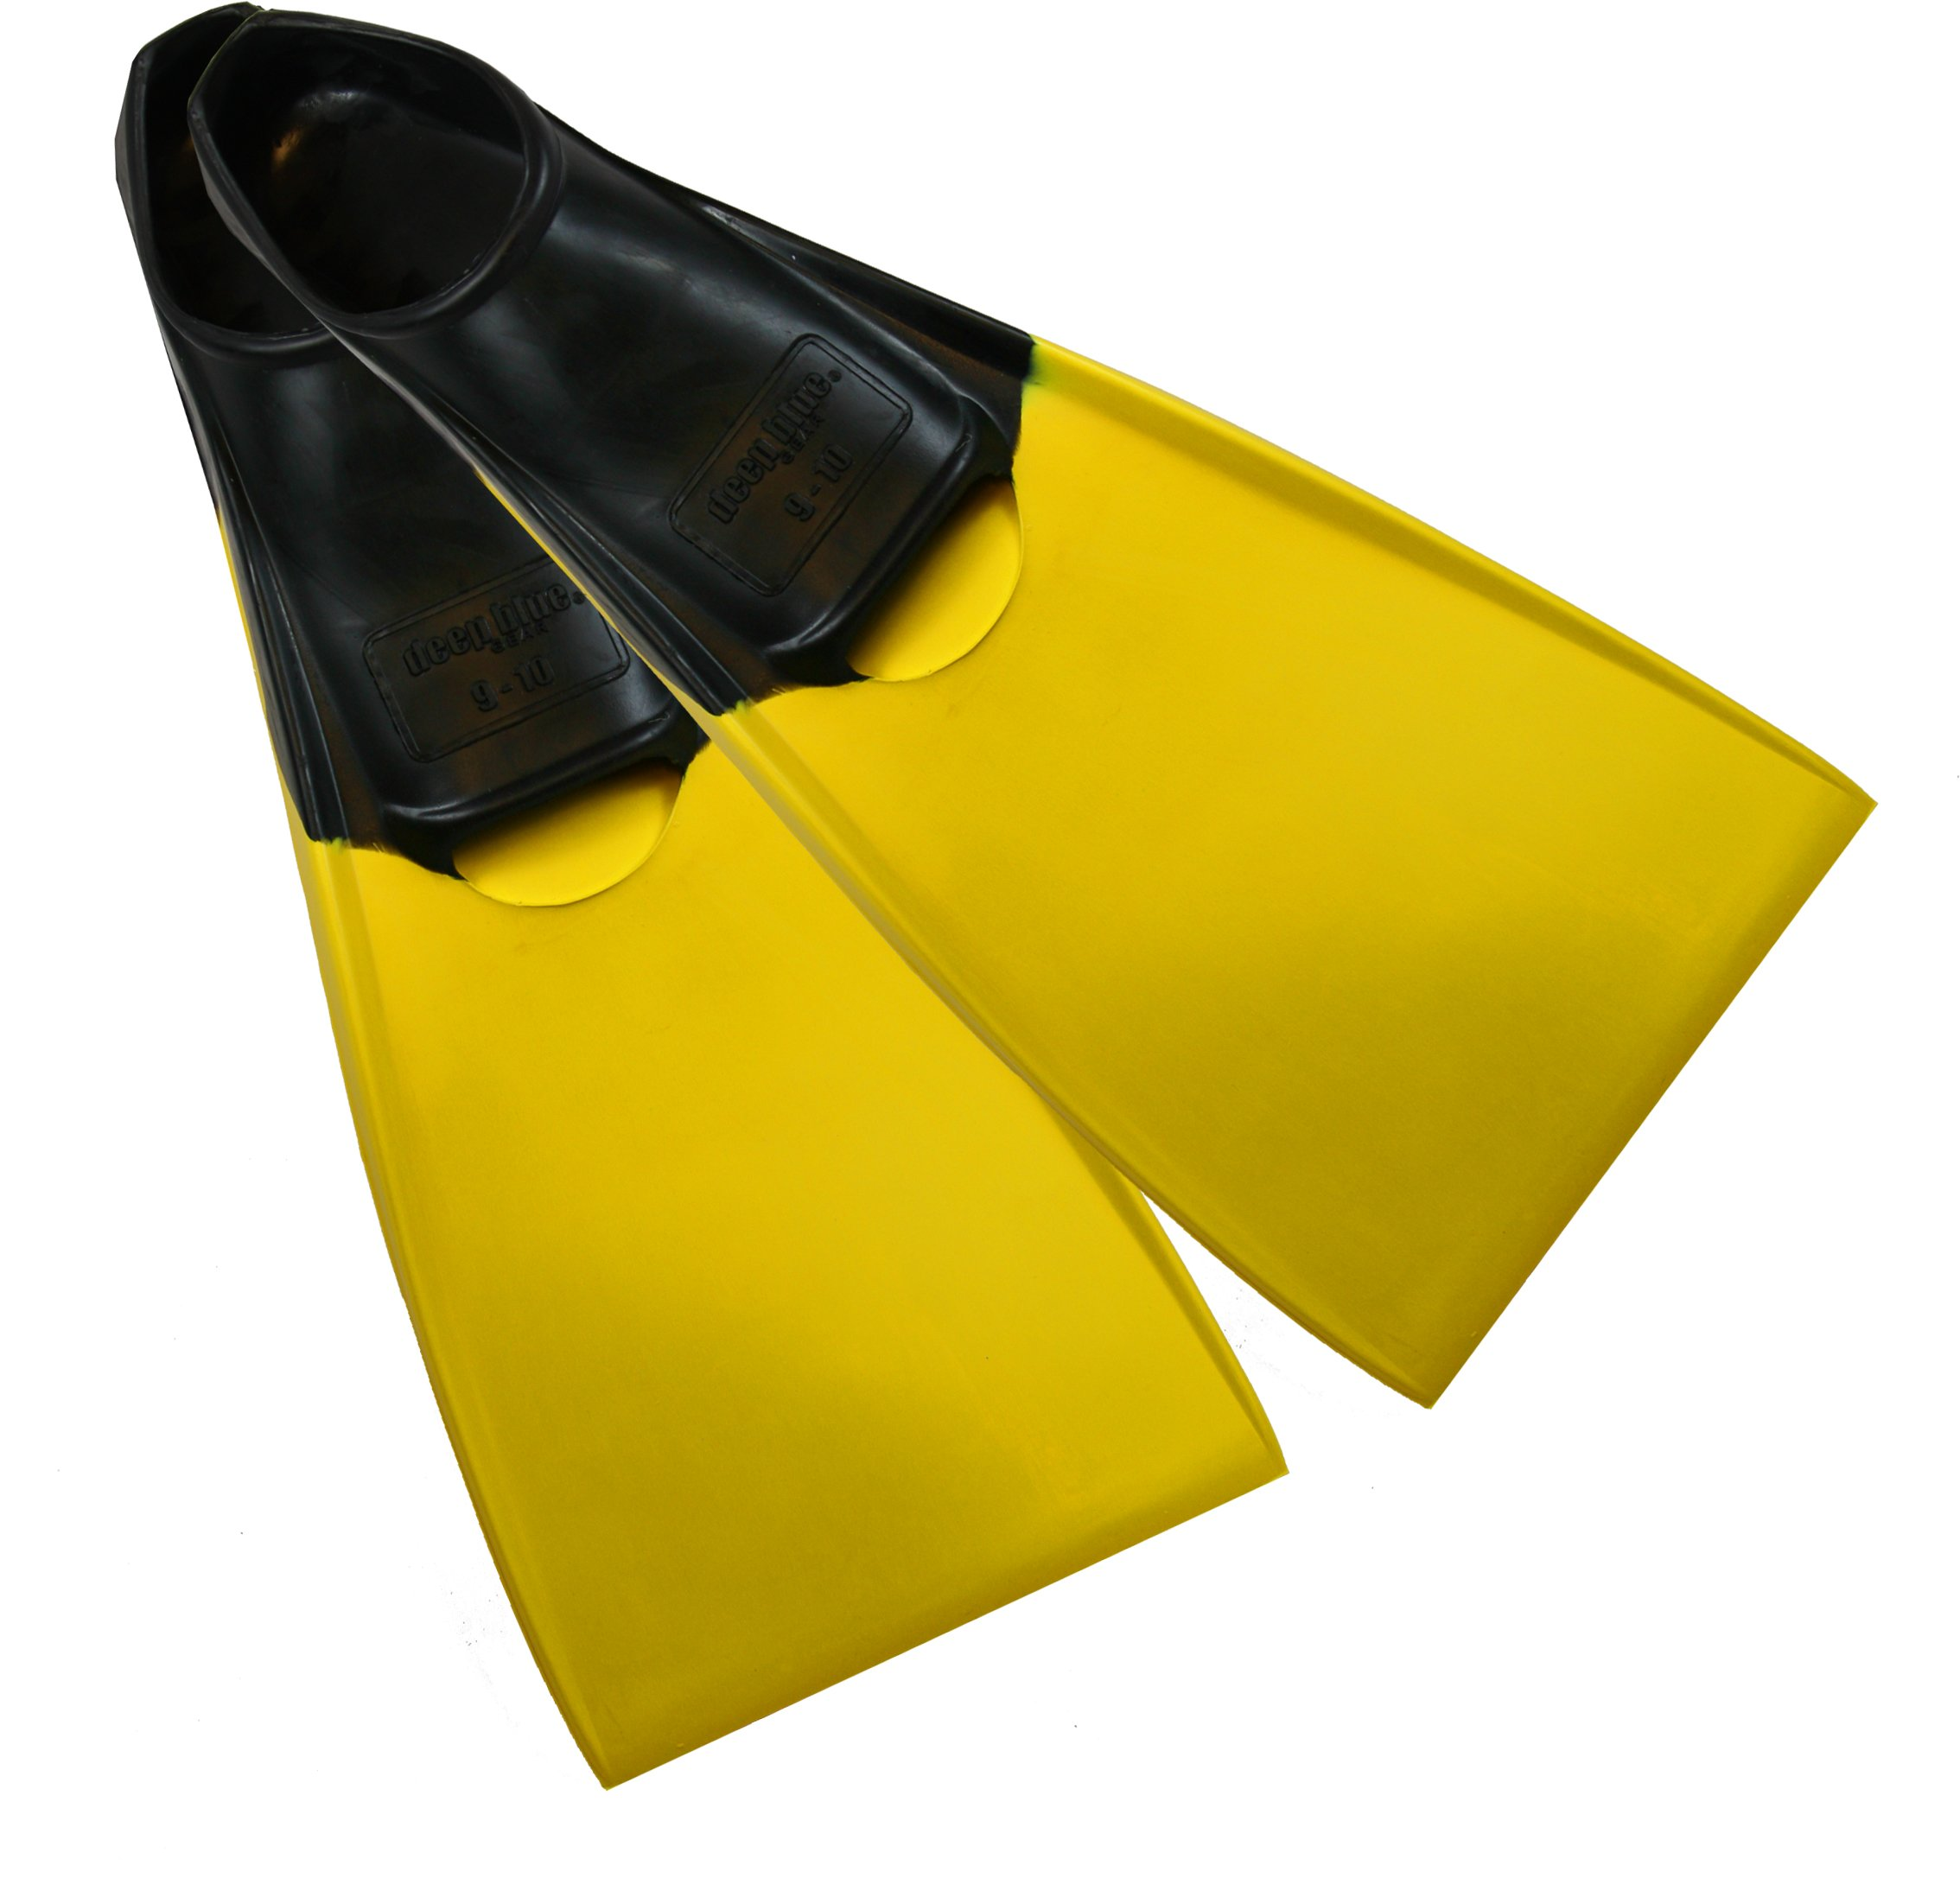 Deep Blue Gear Aquanaut II Fins for Diving, Snorkeling, and Swim, Adult Size 9-10, Yellow